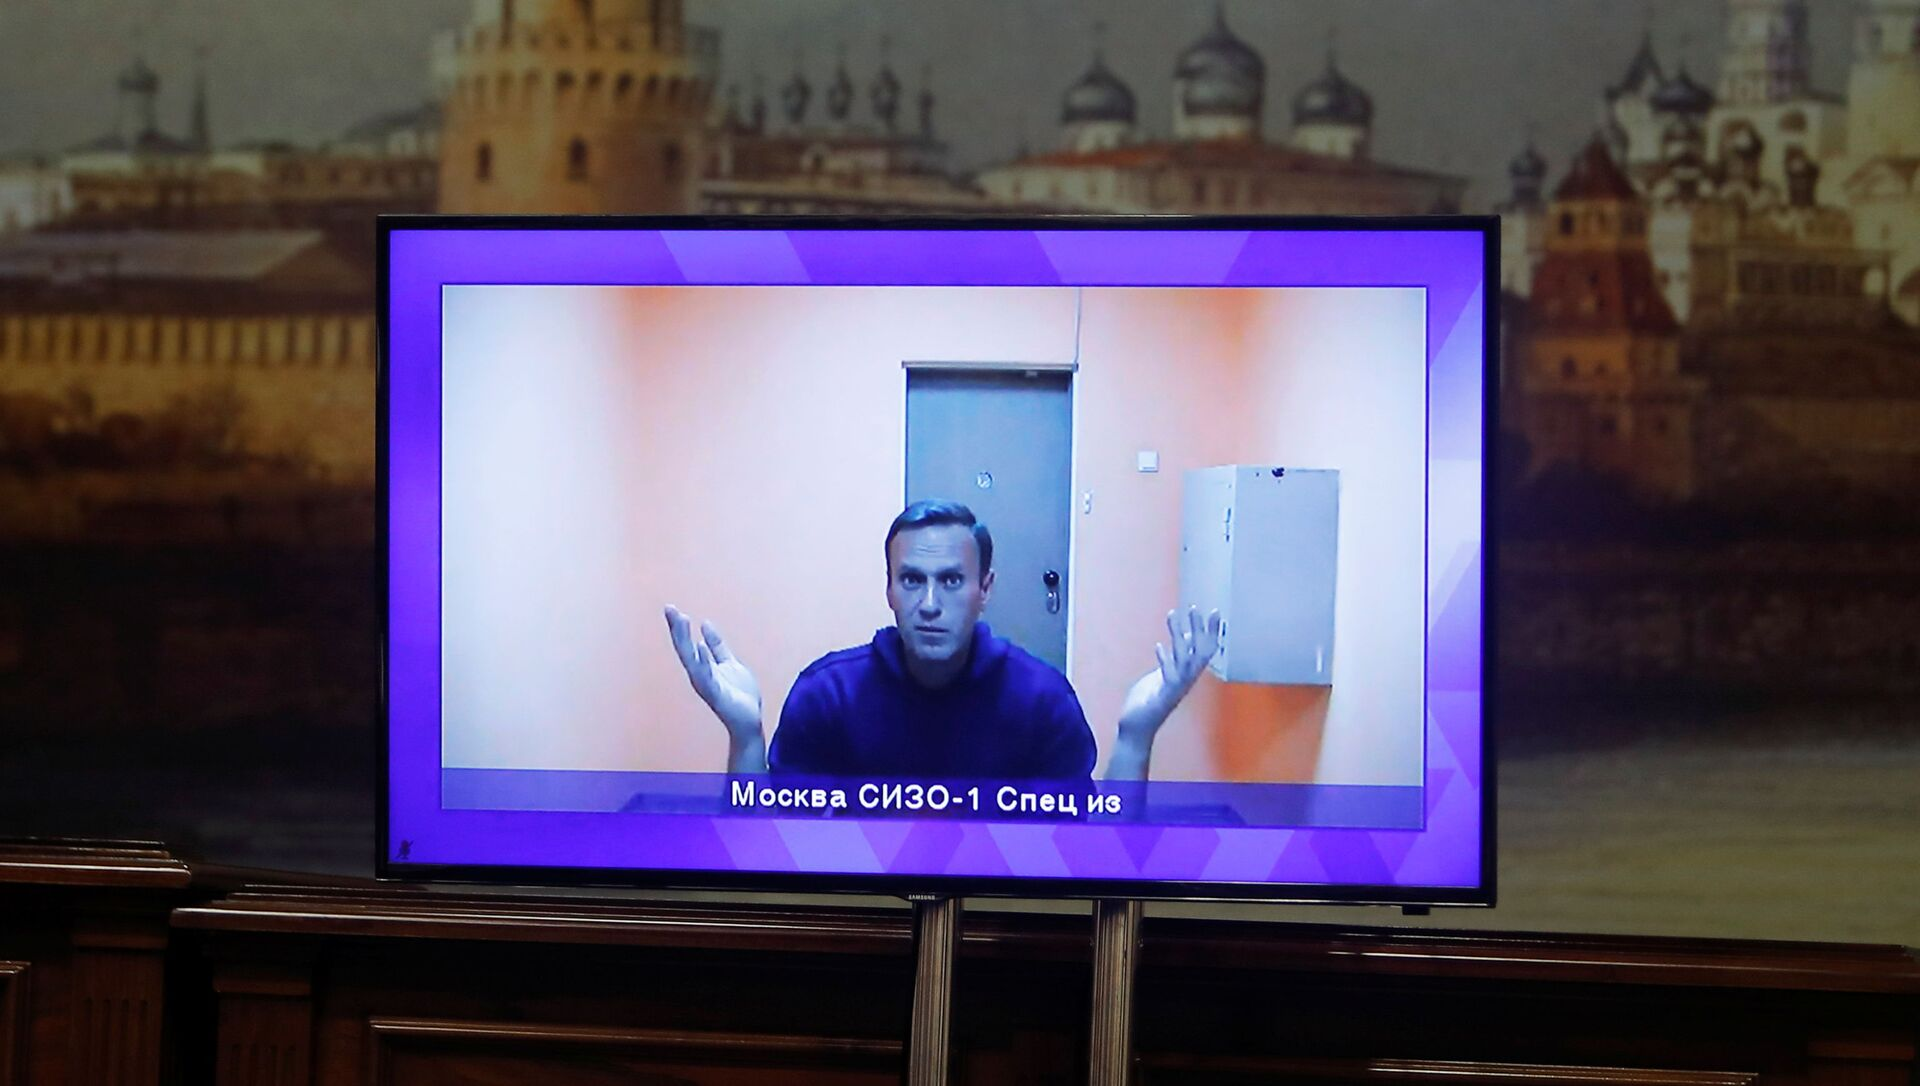 Russian opposition leader Alexei Navalny is seen on a screen via a video link during a court hearing to consider an appeal on his arrest outside Moscow, Russia January 28, 2021 - Sputnik Italia, 1920, 15.02.2021